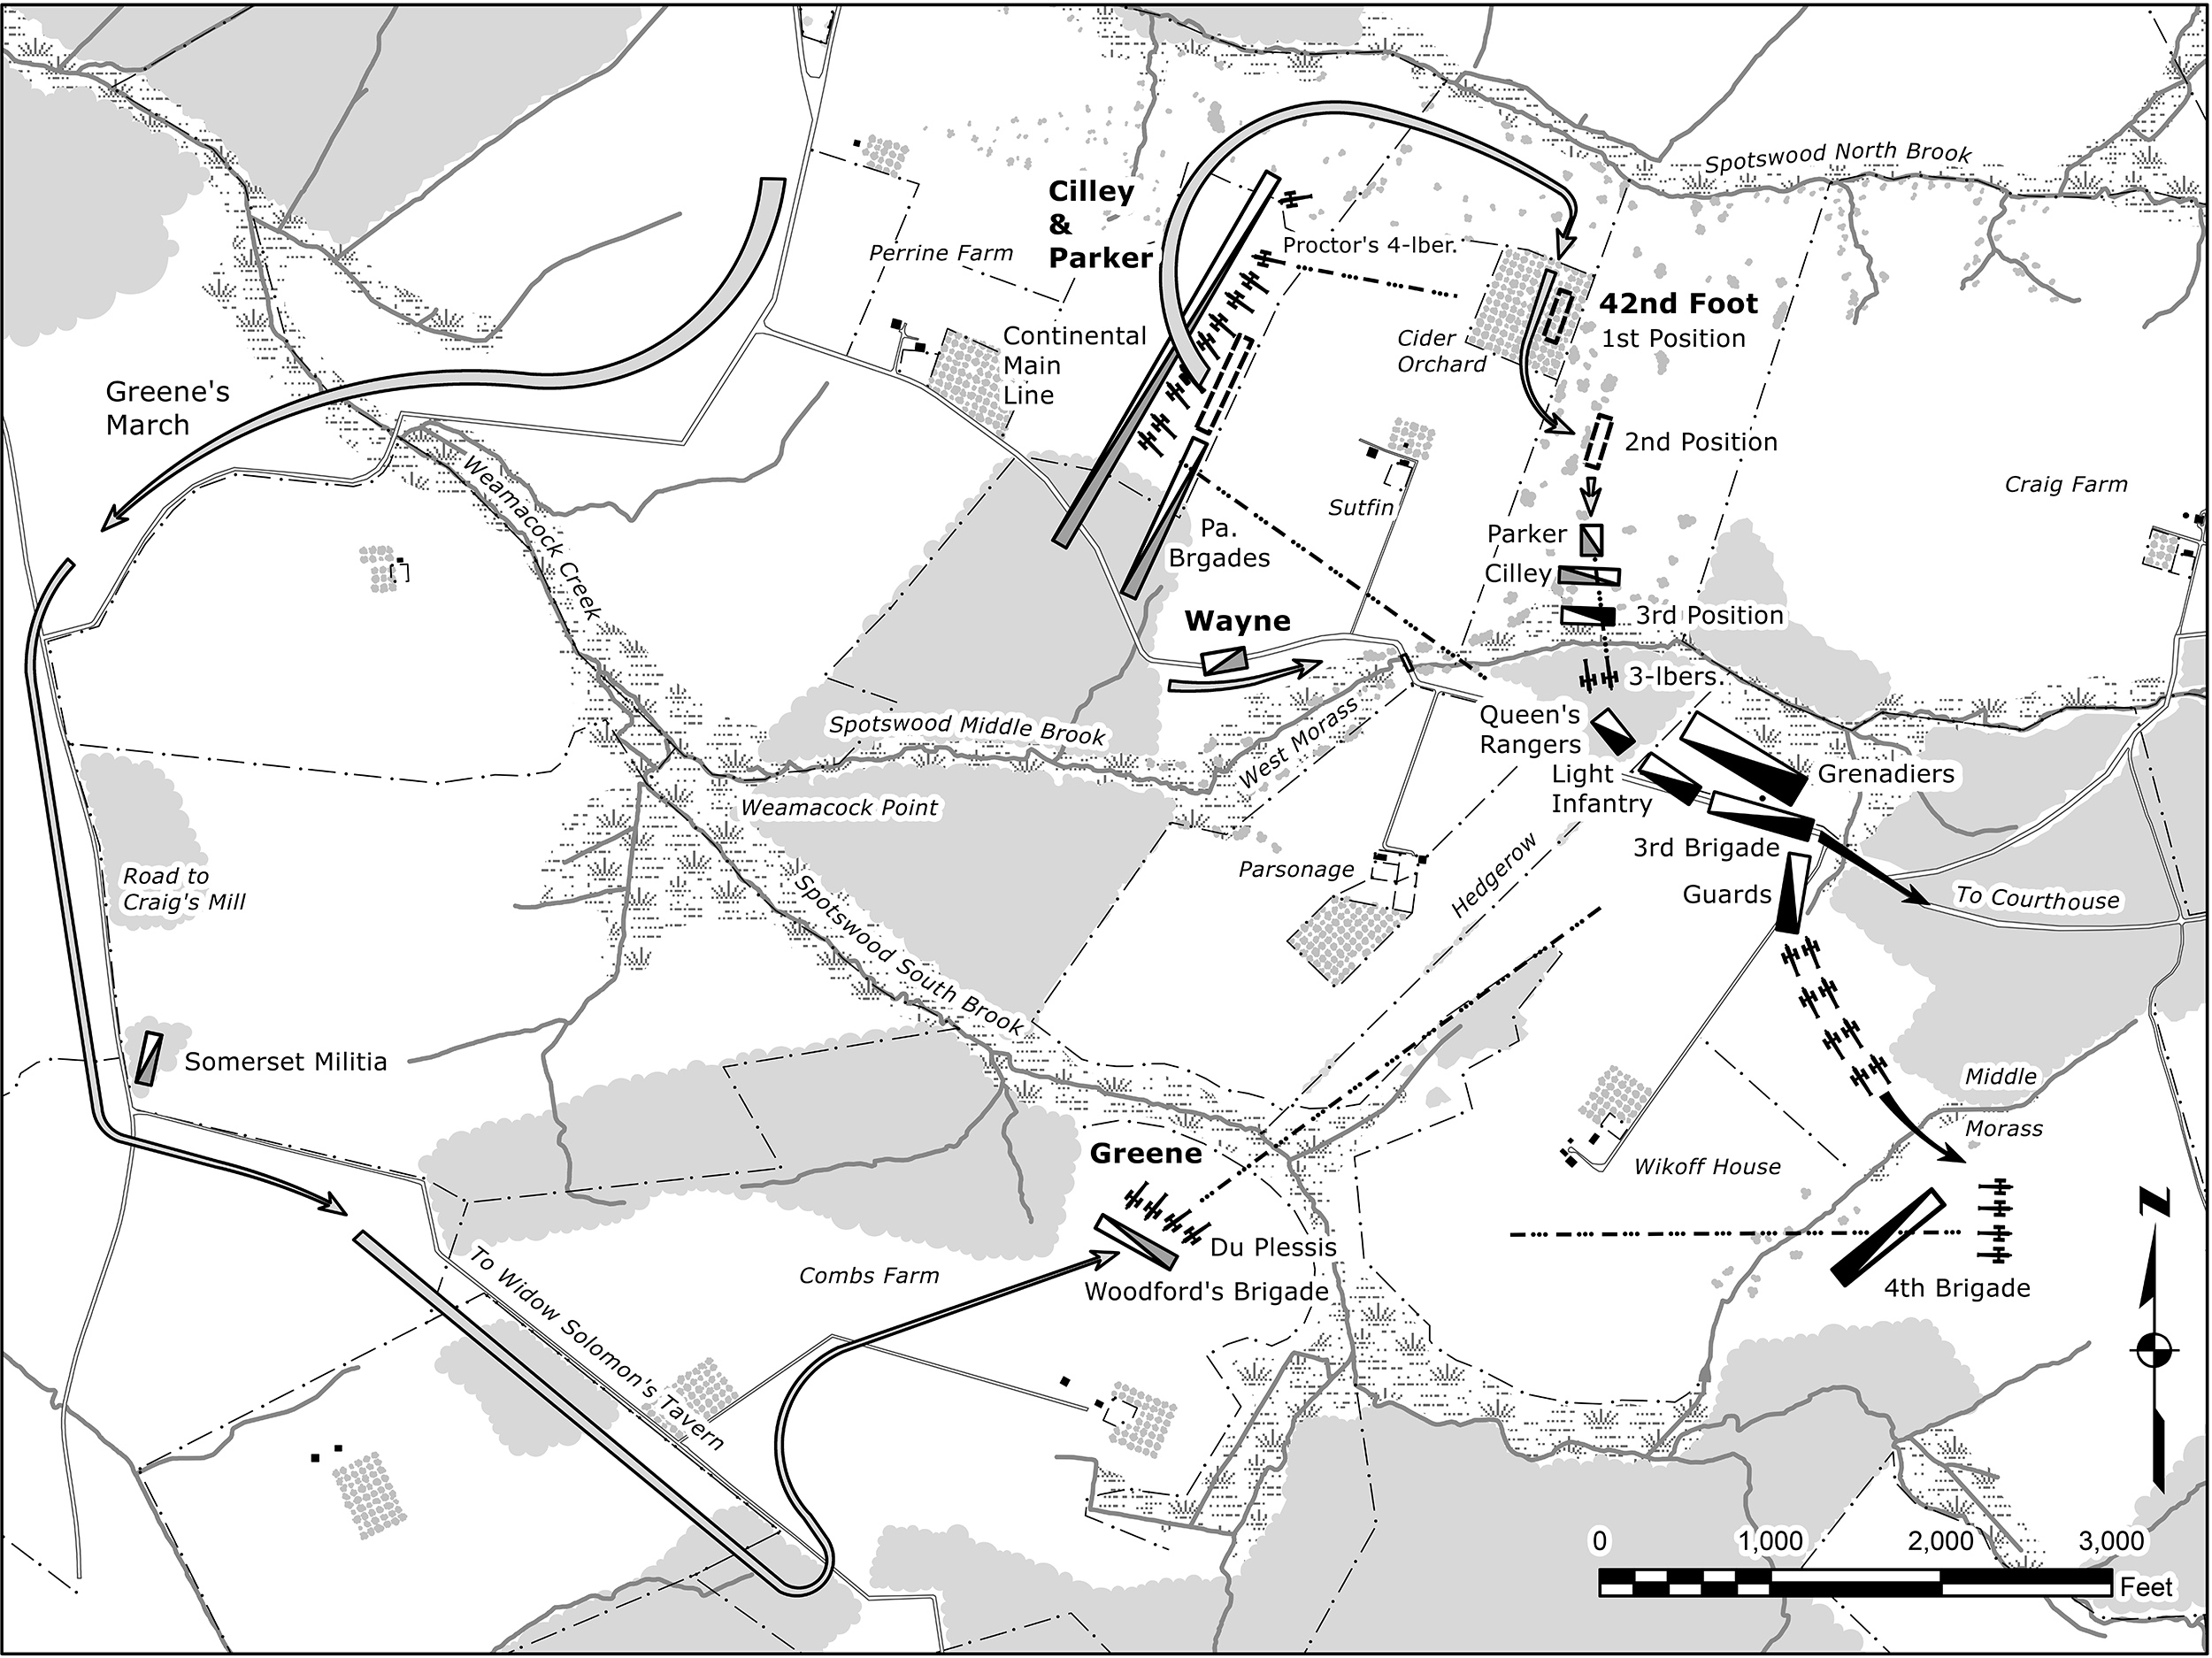 Washington resumes the offensive: Outflanked by Greene's appearance on Comb's Hill, the British begin withdrawing, while Washington advances. (Map by Garry Wheeler Stone, Copyright by University of Oklahoma Press )